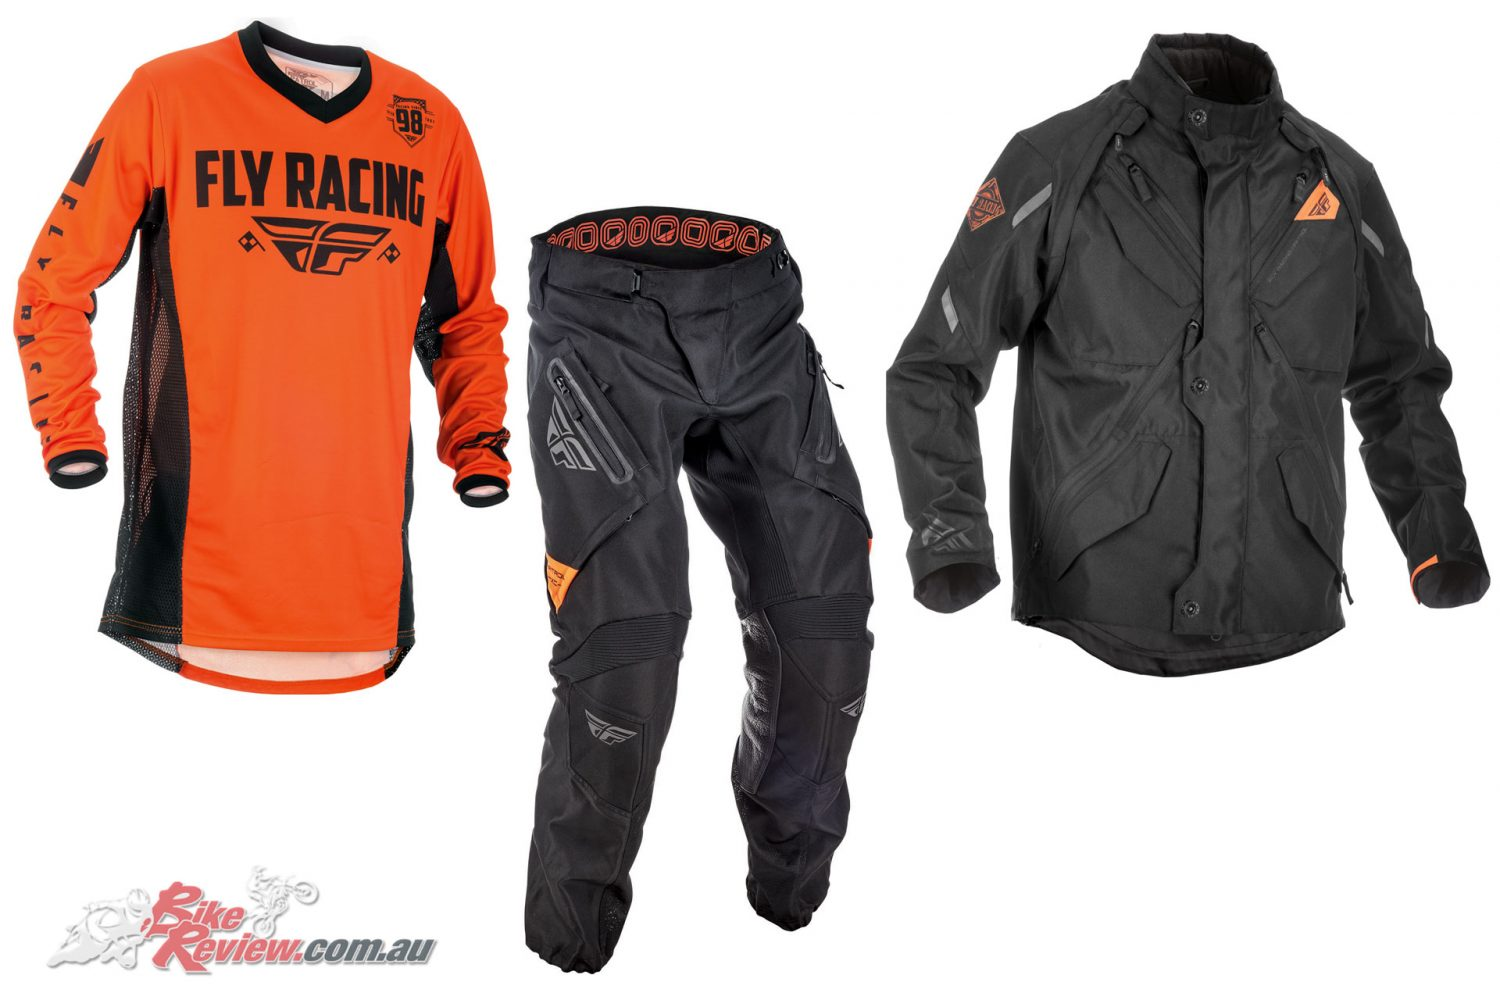 Fly Racing's Patrol Off-Road Gear range is now available